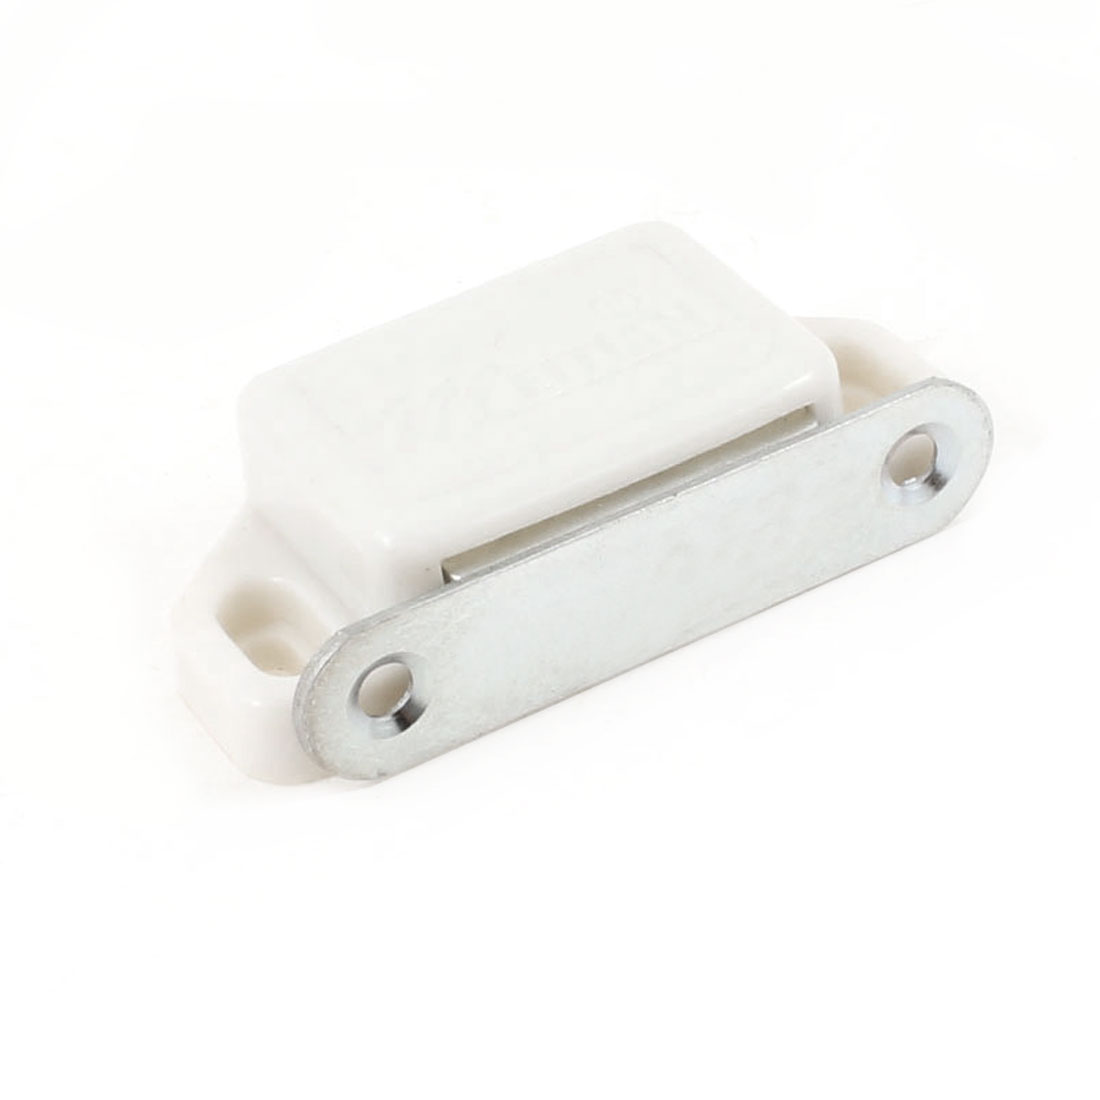 58mm x 28mm x 14mm Plastic Housing Magnetic Catch Latch White